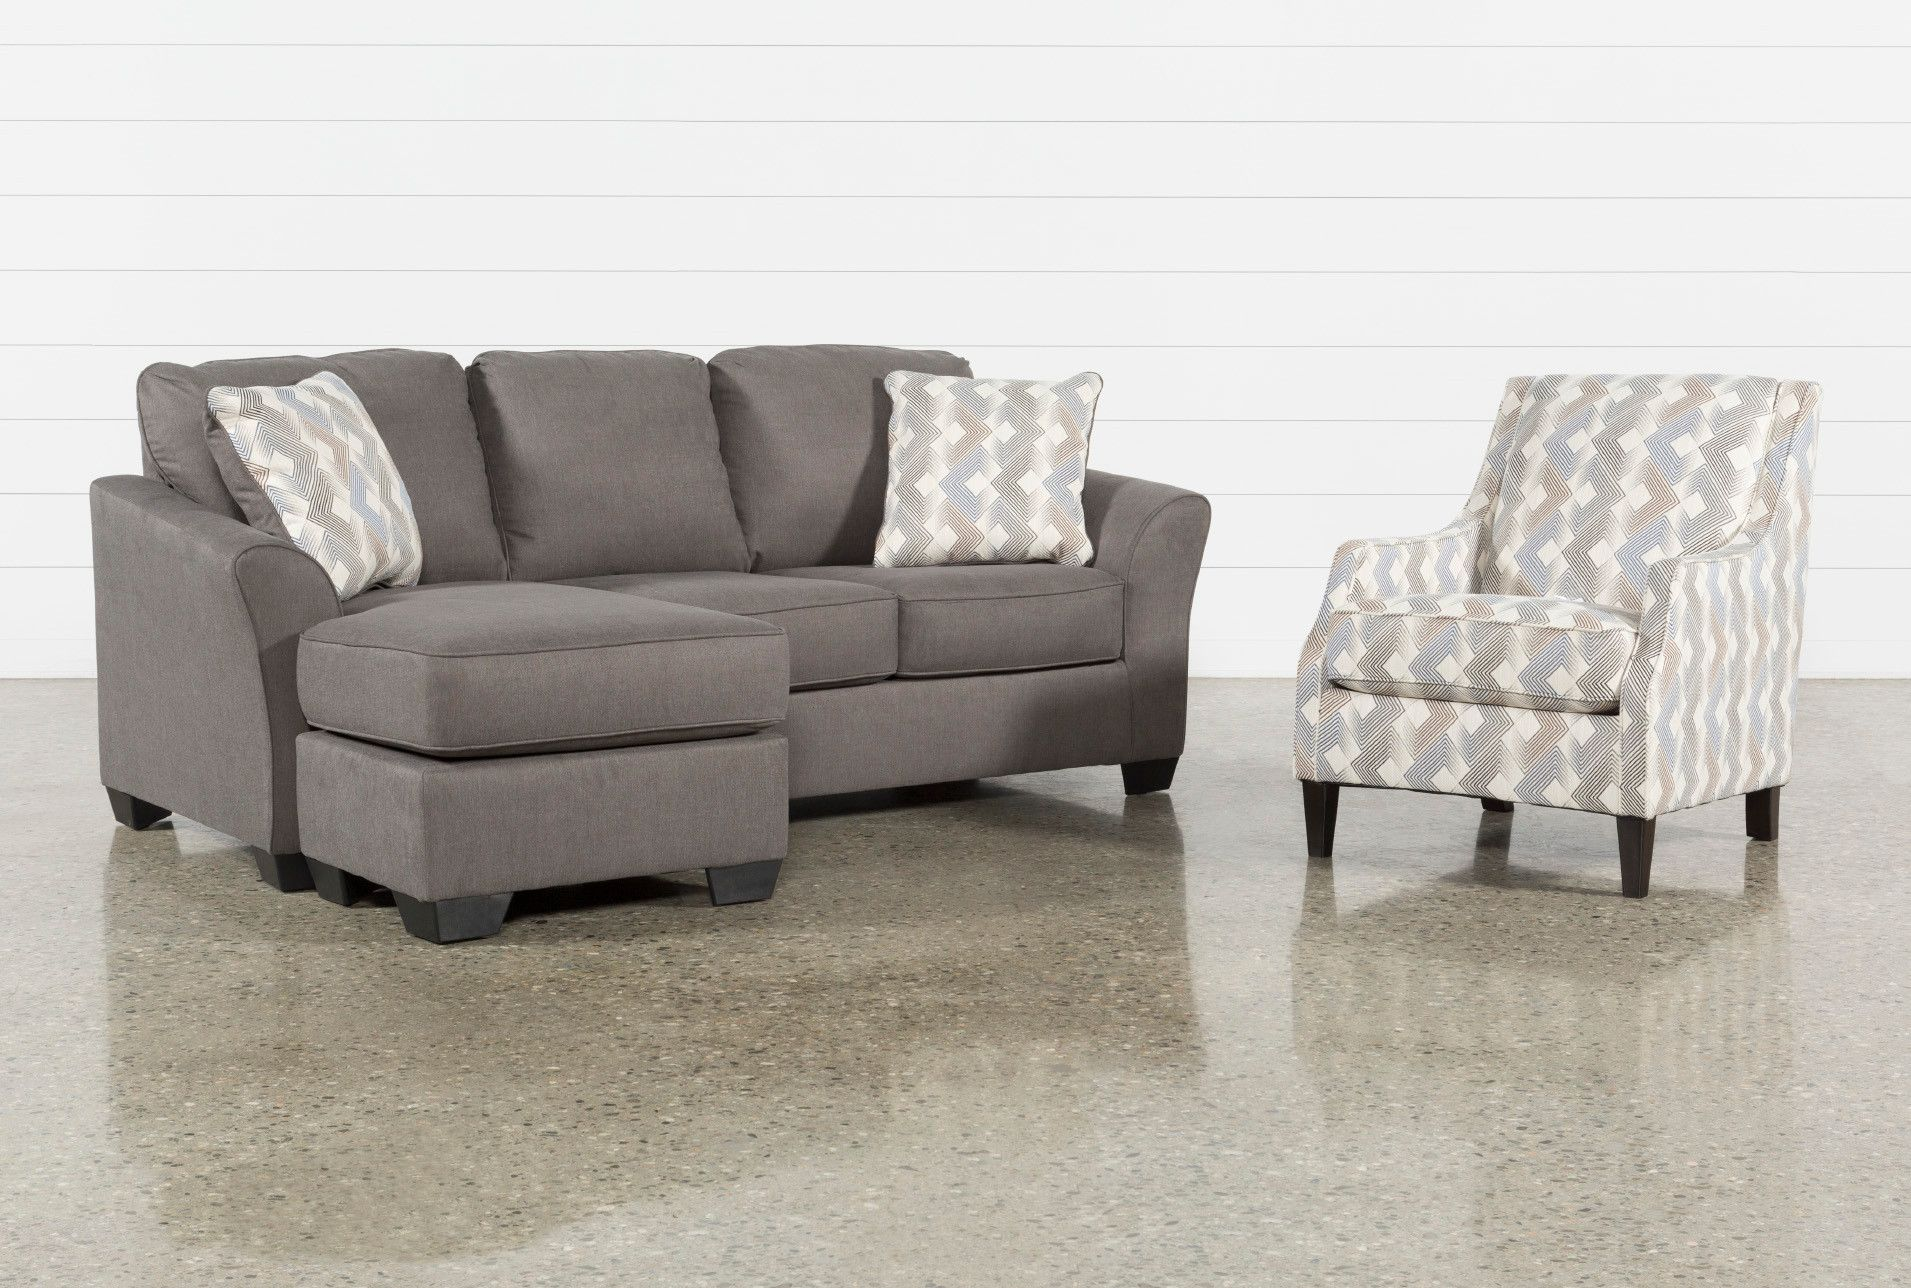 Tucker 2 Piece Living Room Set With Accent Chair Accent Chairs